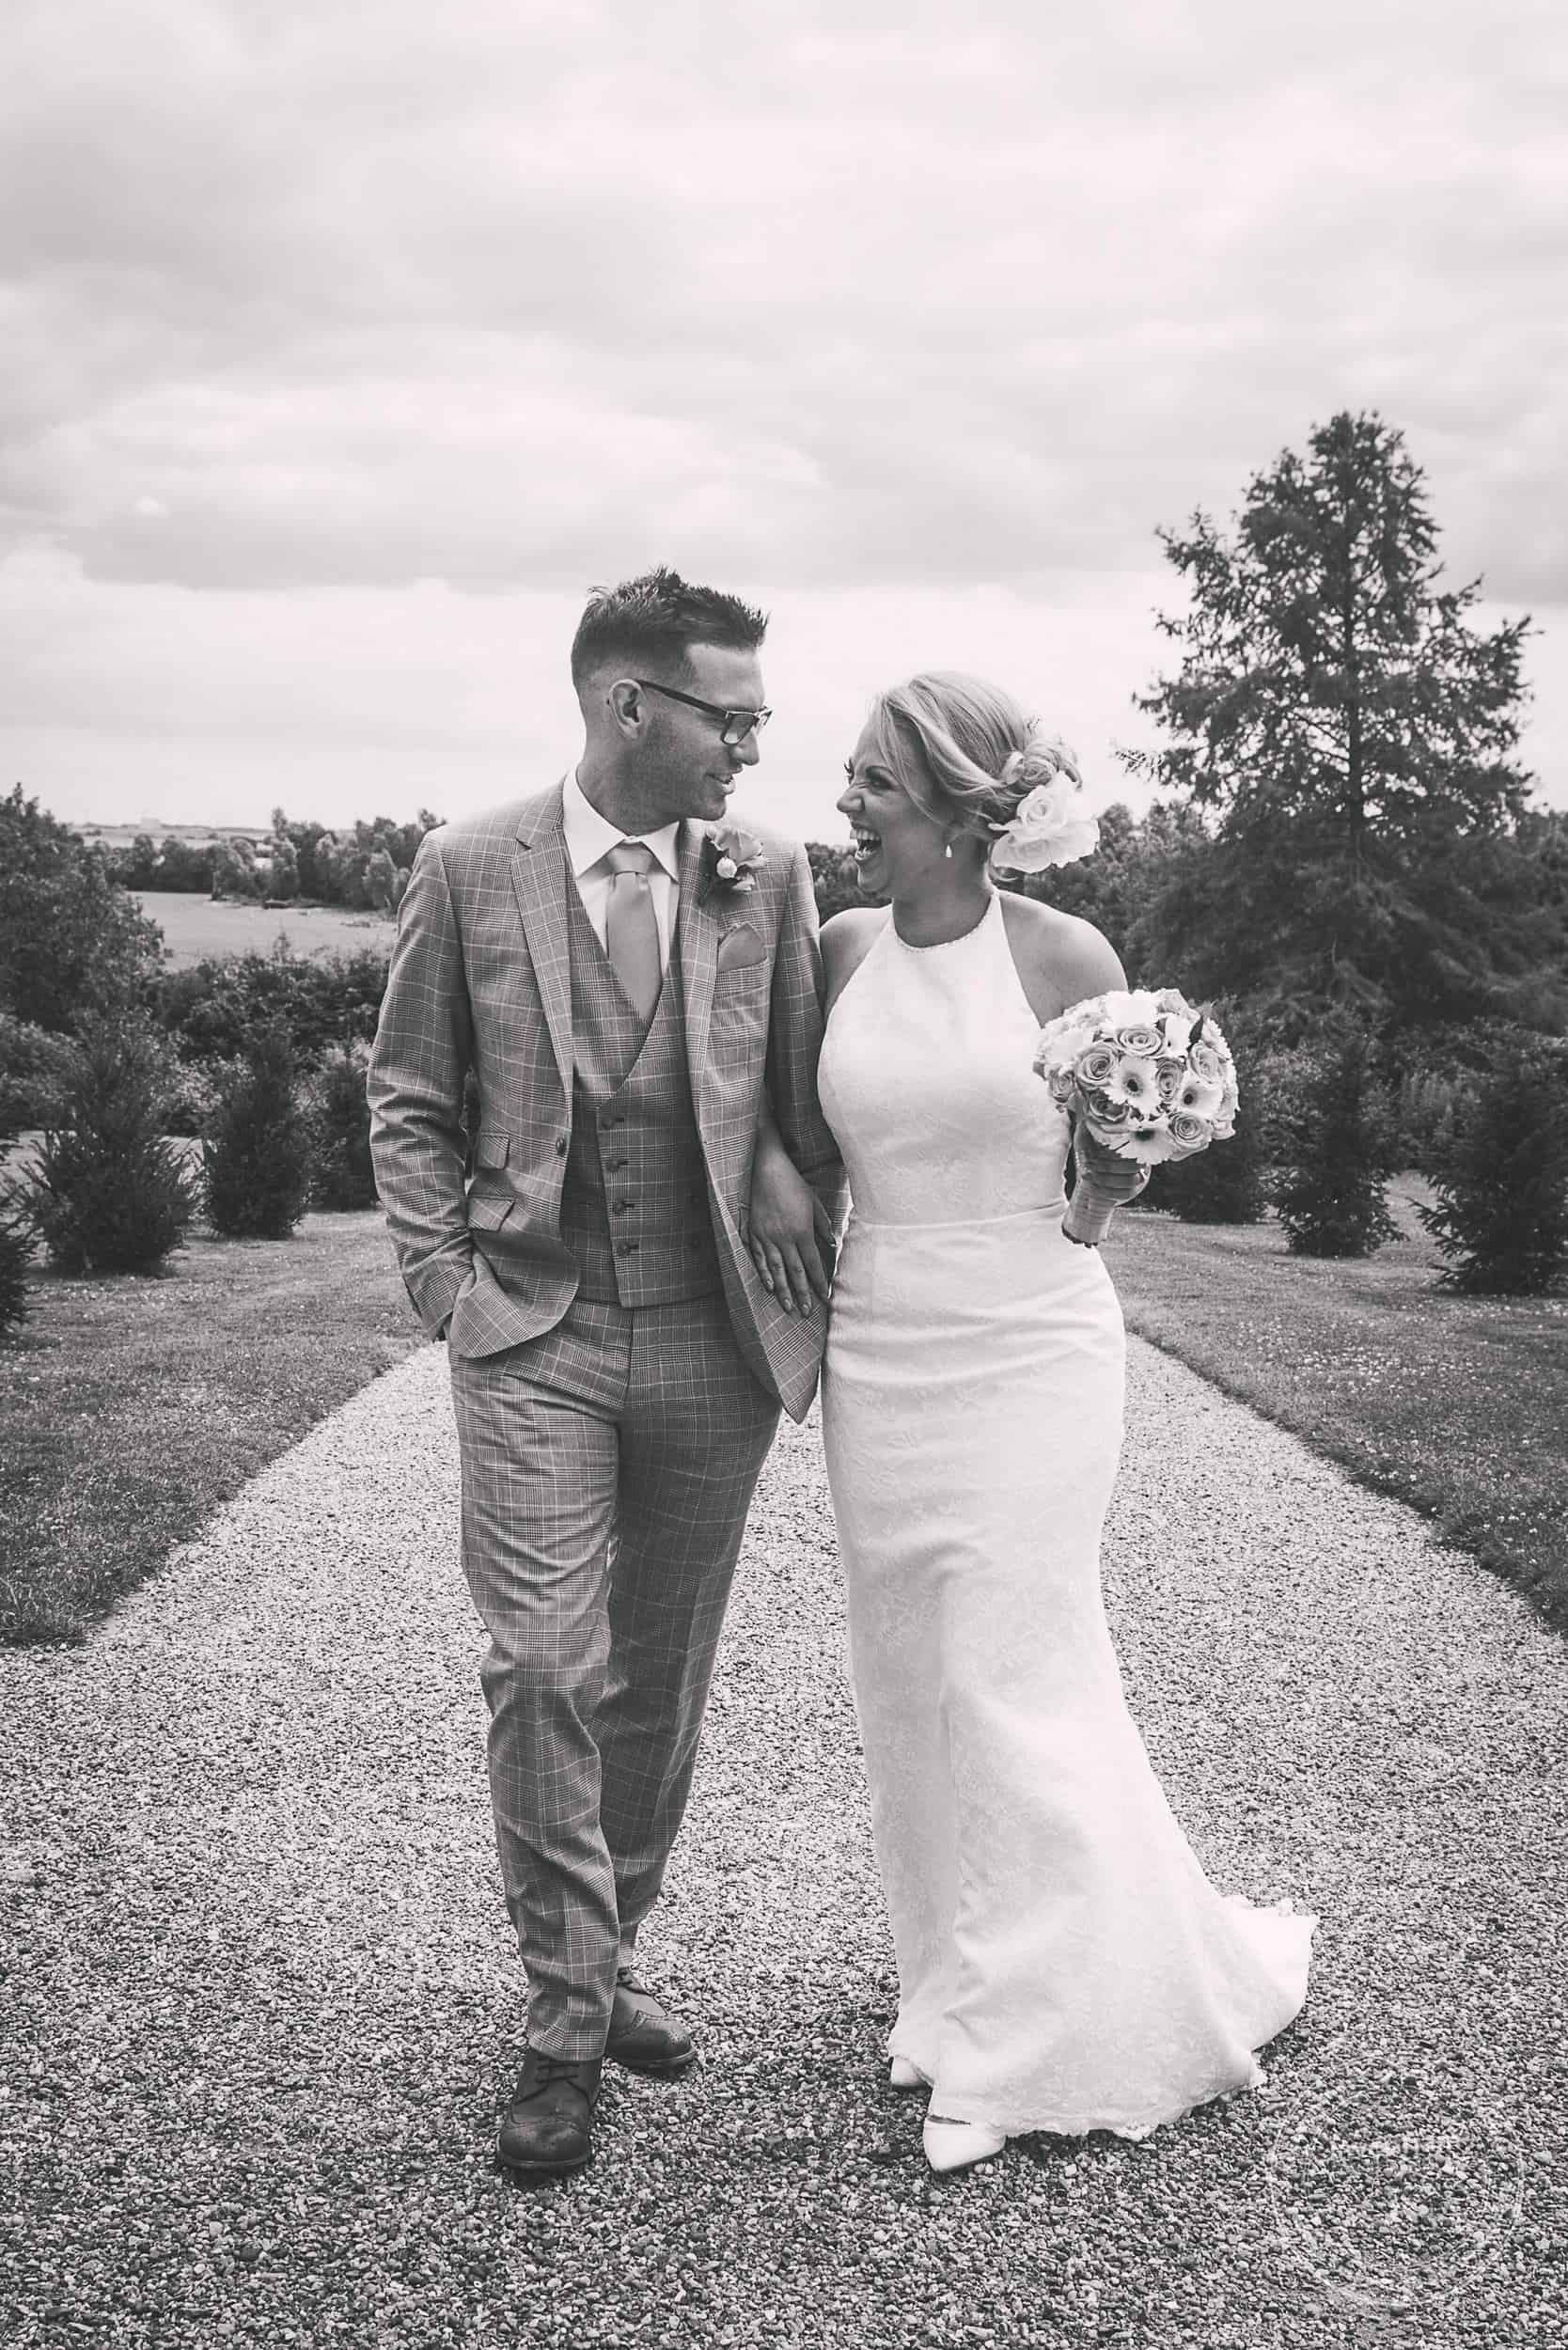 140717 Layer Marney Wedding Photography by Lavenham Photographic 070